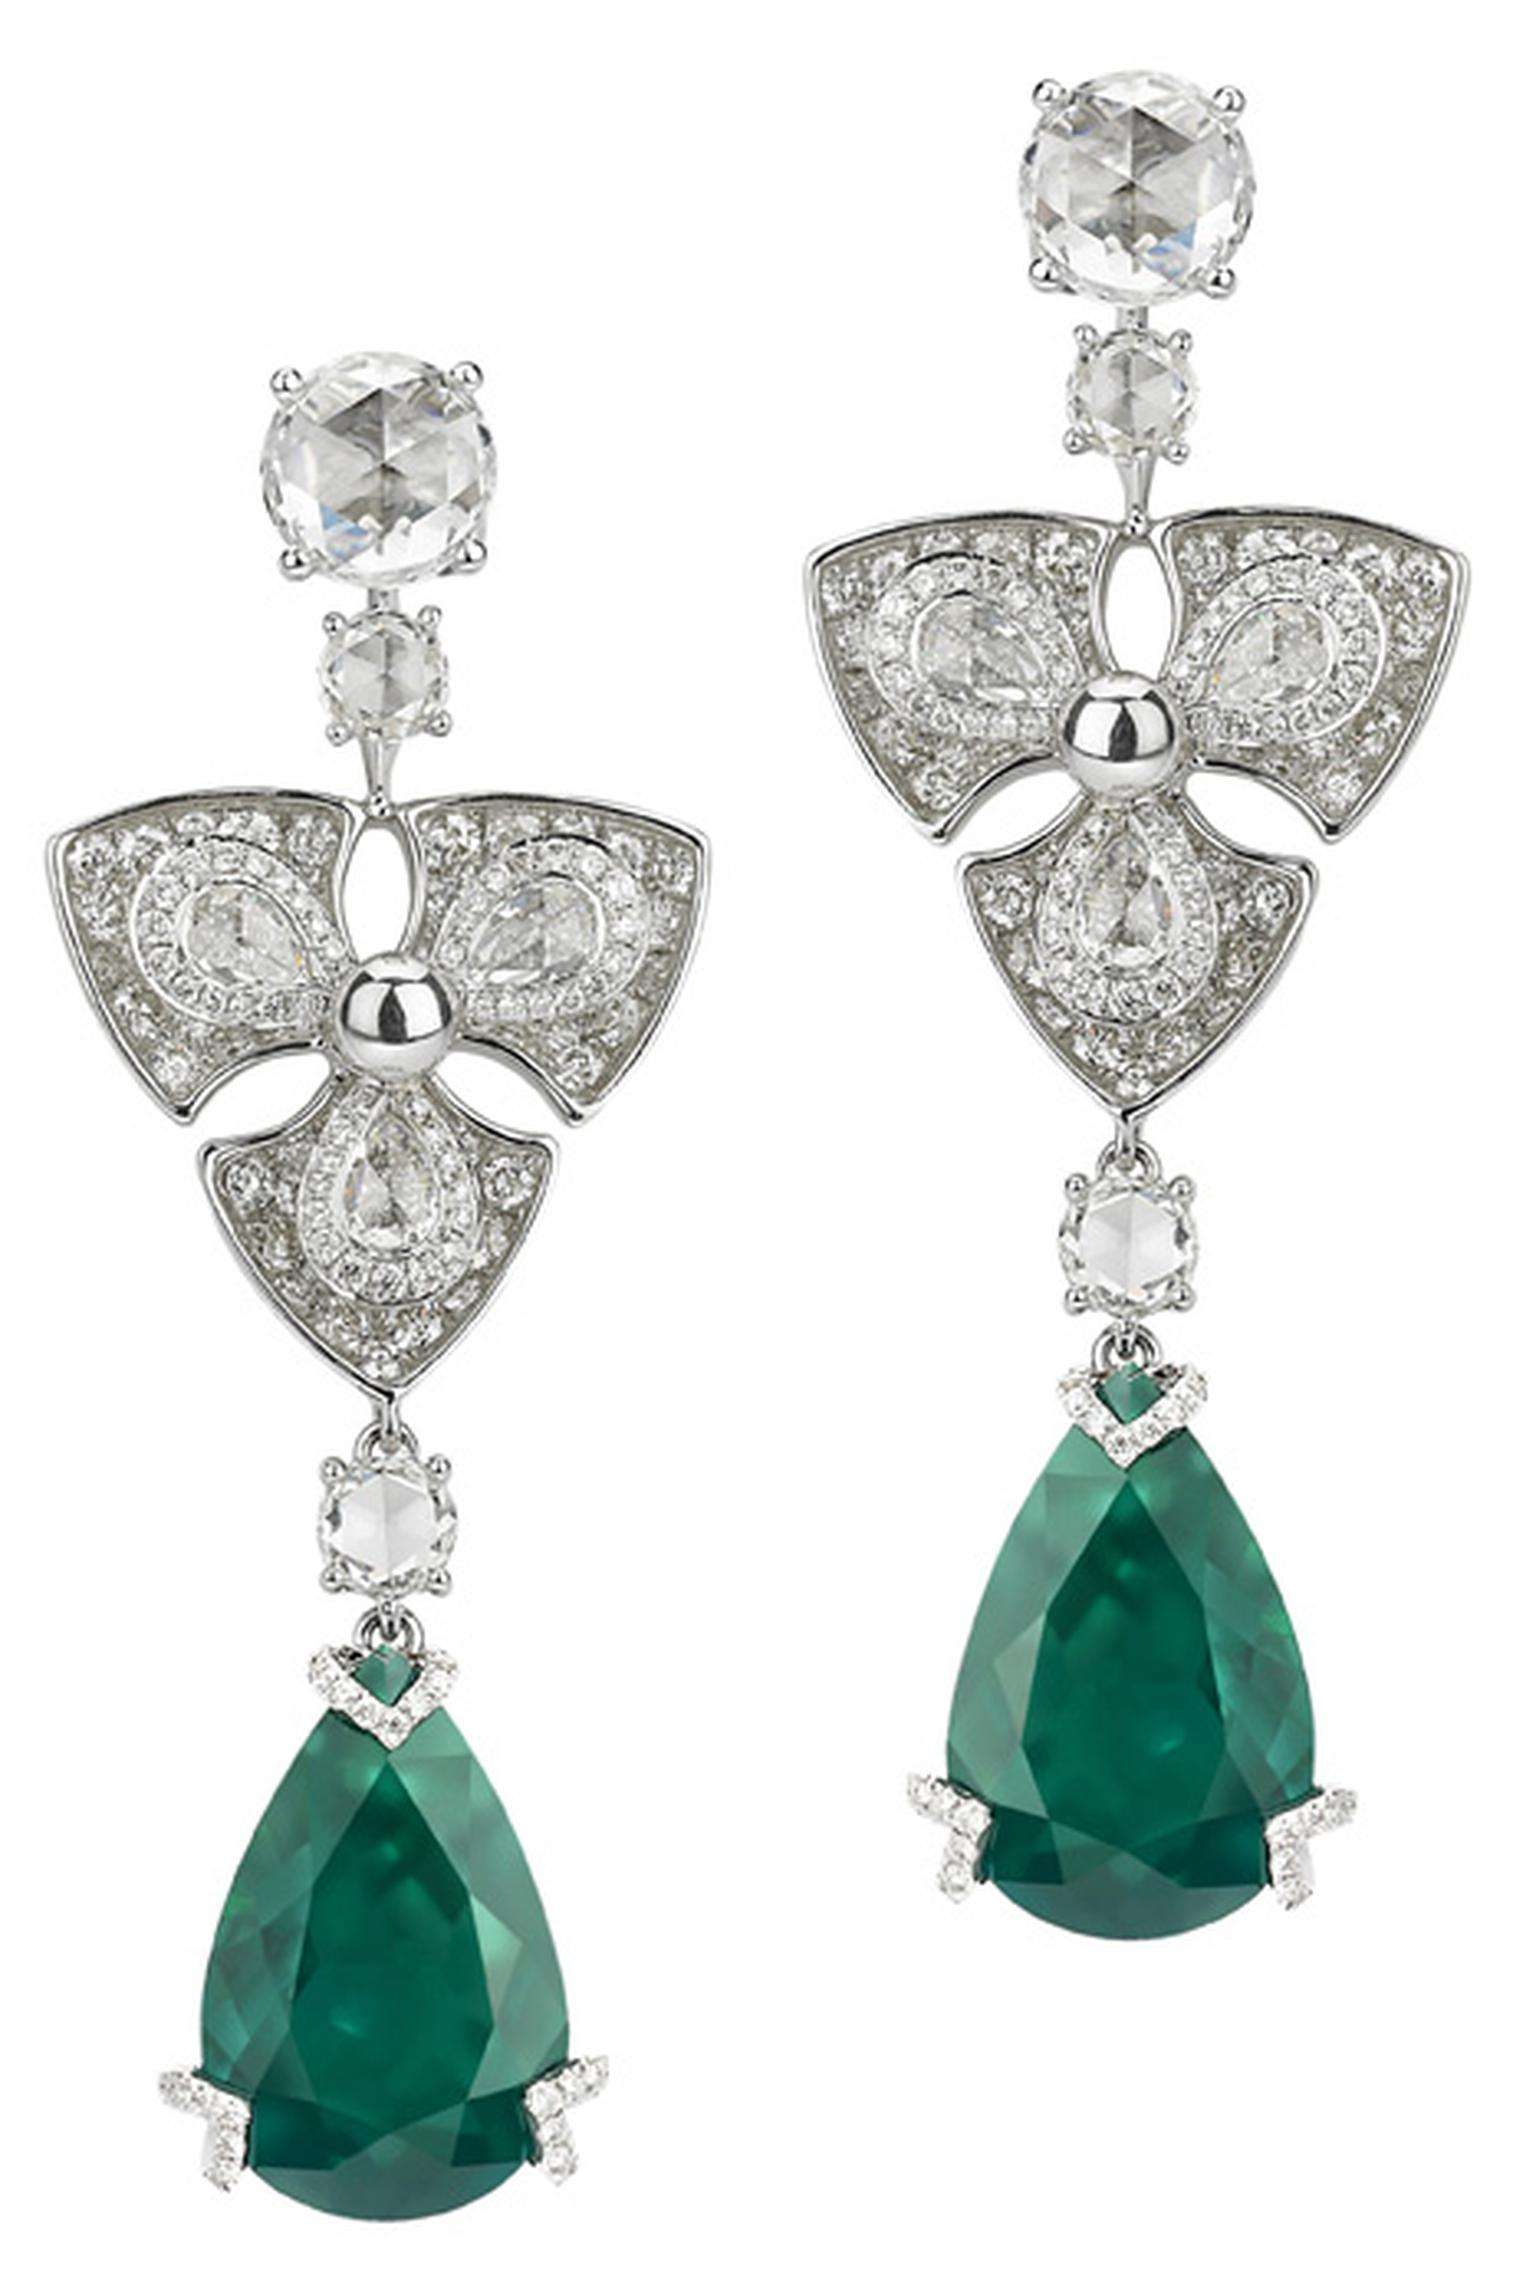 Avakian-pear-shape-emerald-earrings.jpg